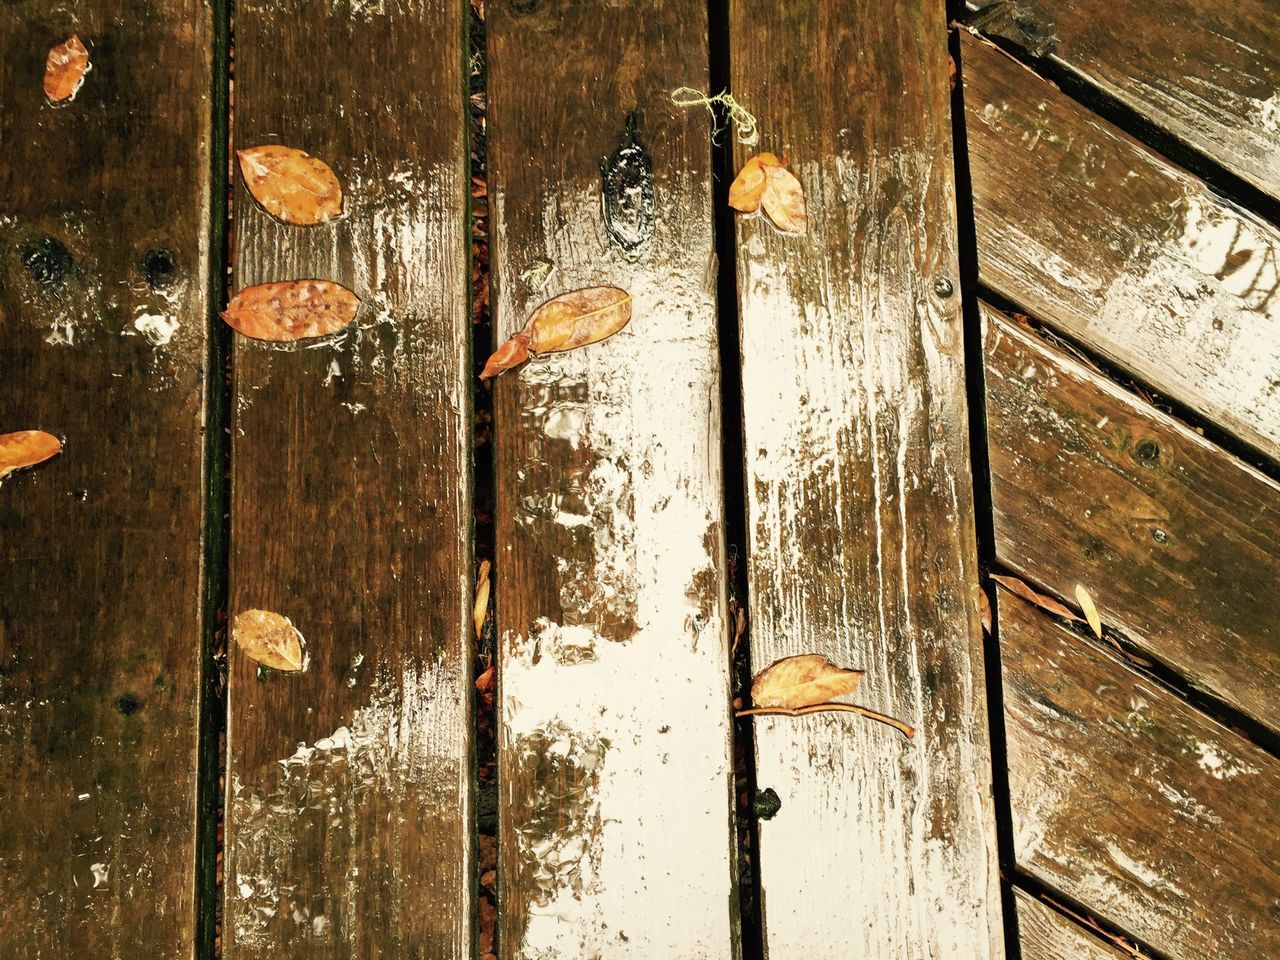 Rainy walkway Angles Backgrounds Close-up Day Full Frame Landscape Leaves Nature No People Outdoors Pattern Rainday RainyDay Reflection Slick Walkway Water Wood - Material